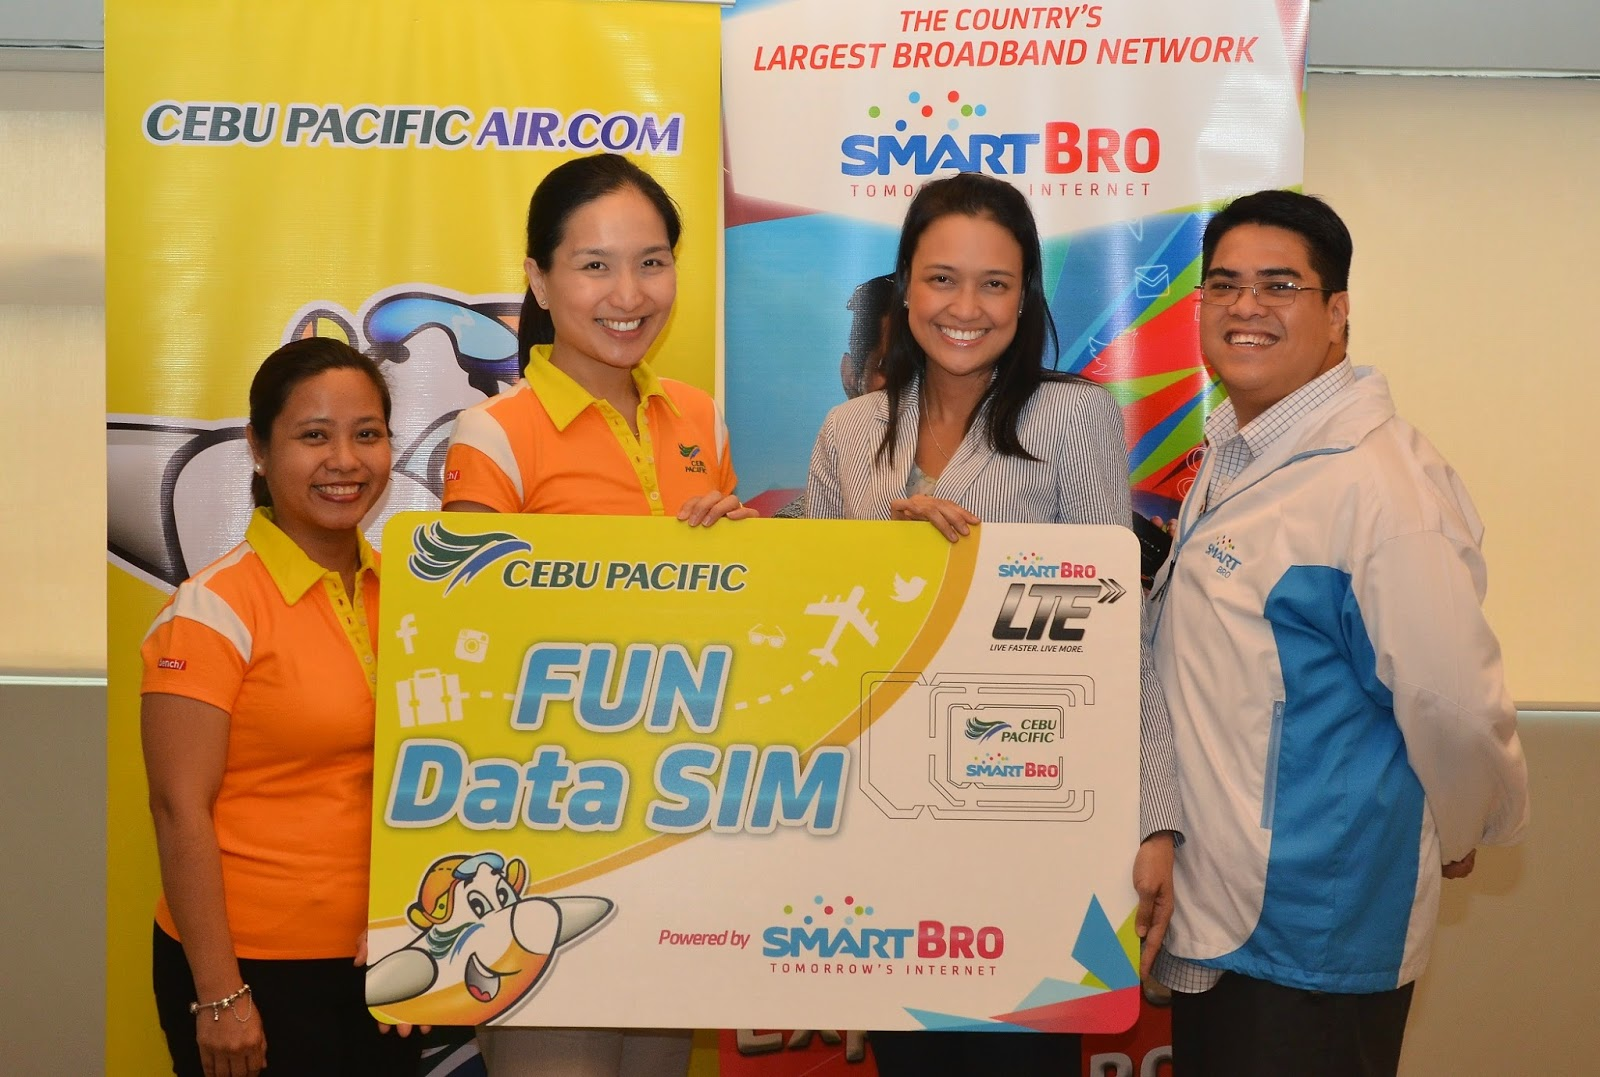 Cebu Pacific Fun Data SIM powered by Smart Bro